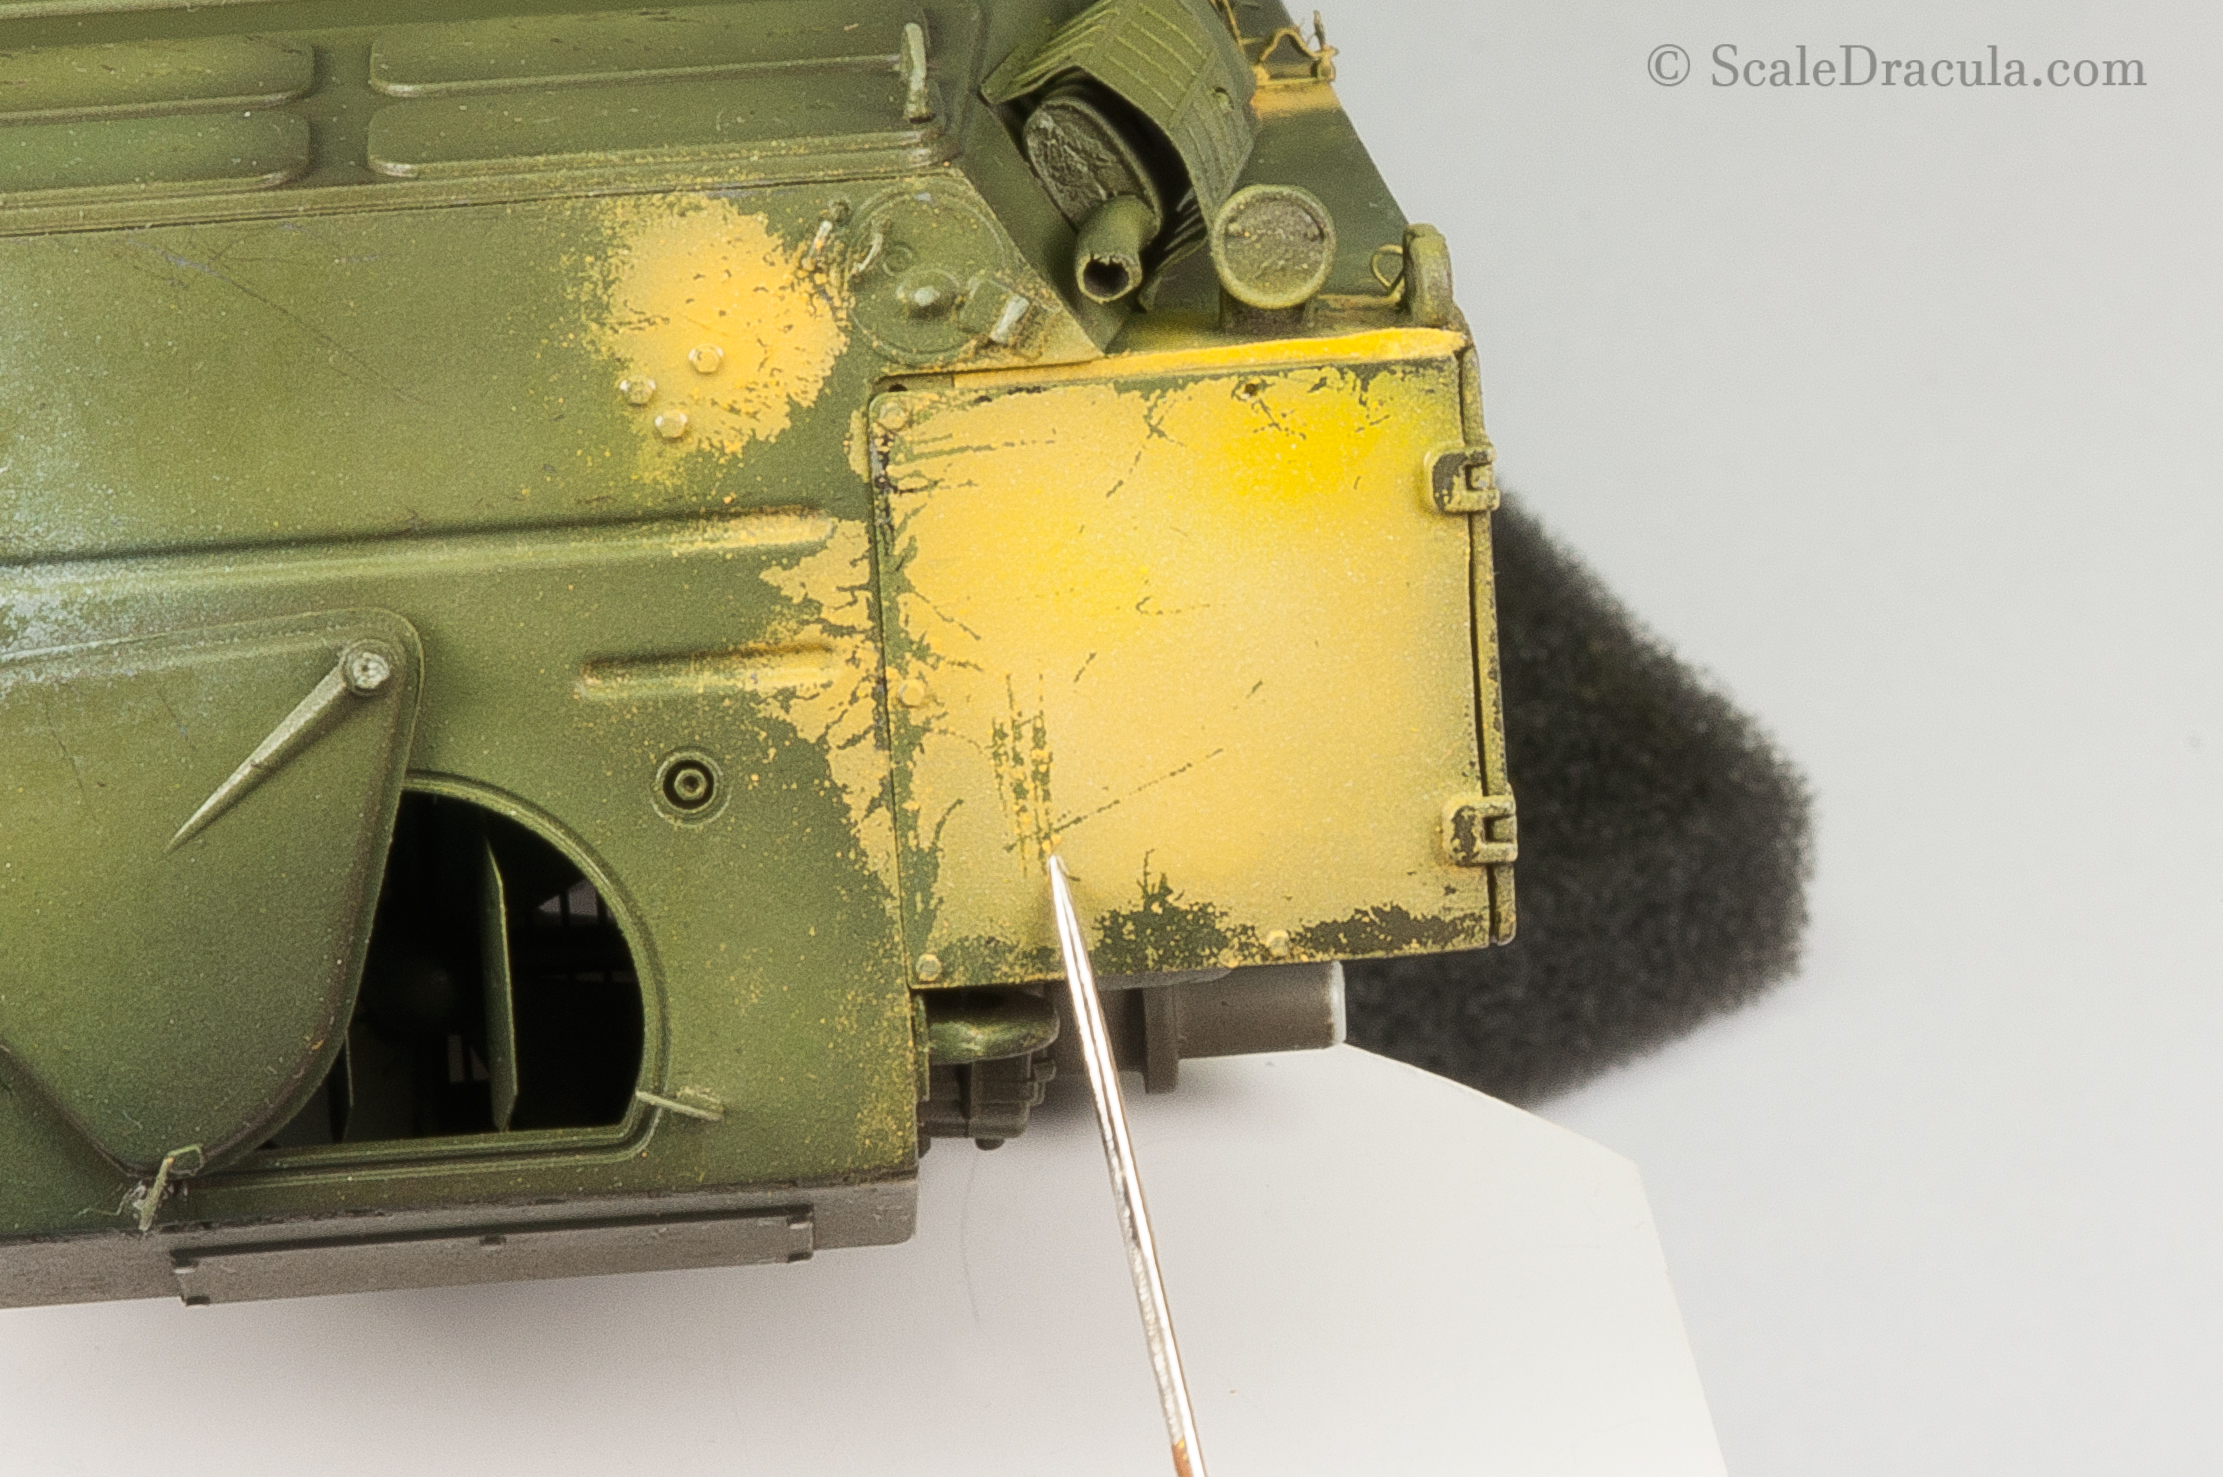 Paint scratches on yellow camouflage, BRDM-2 by Trumpeter